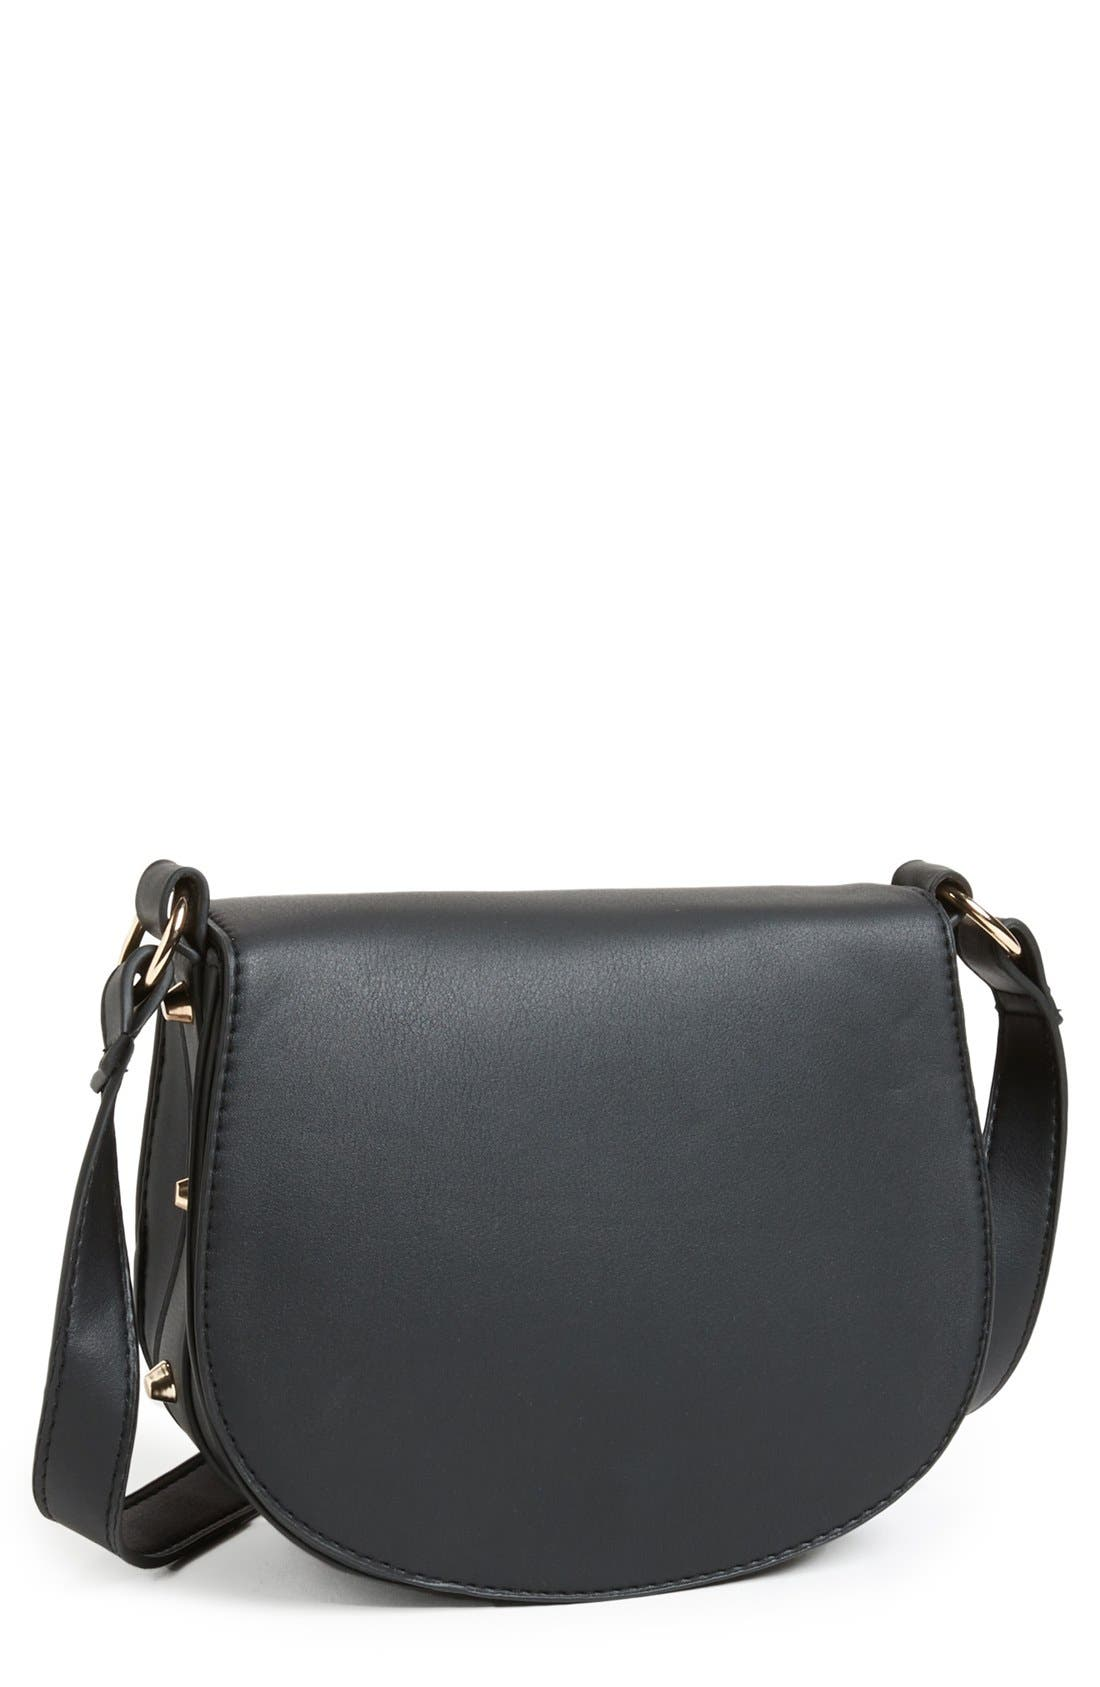 Alternate Image 1 Selected - Super Trader Studded Crossbody Bag (Juniors) (Online Only)